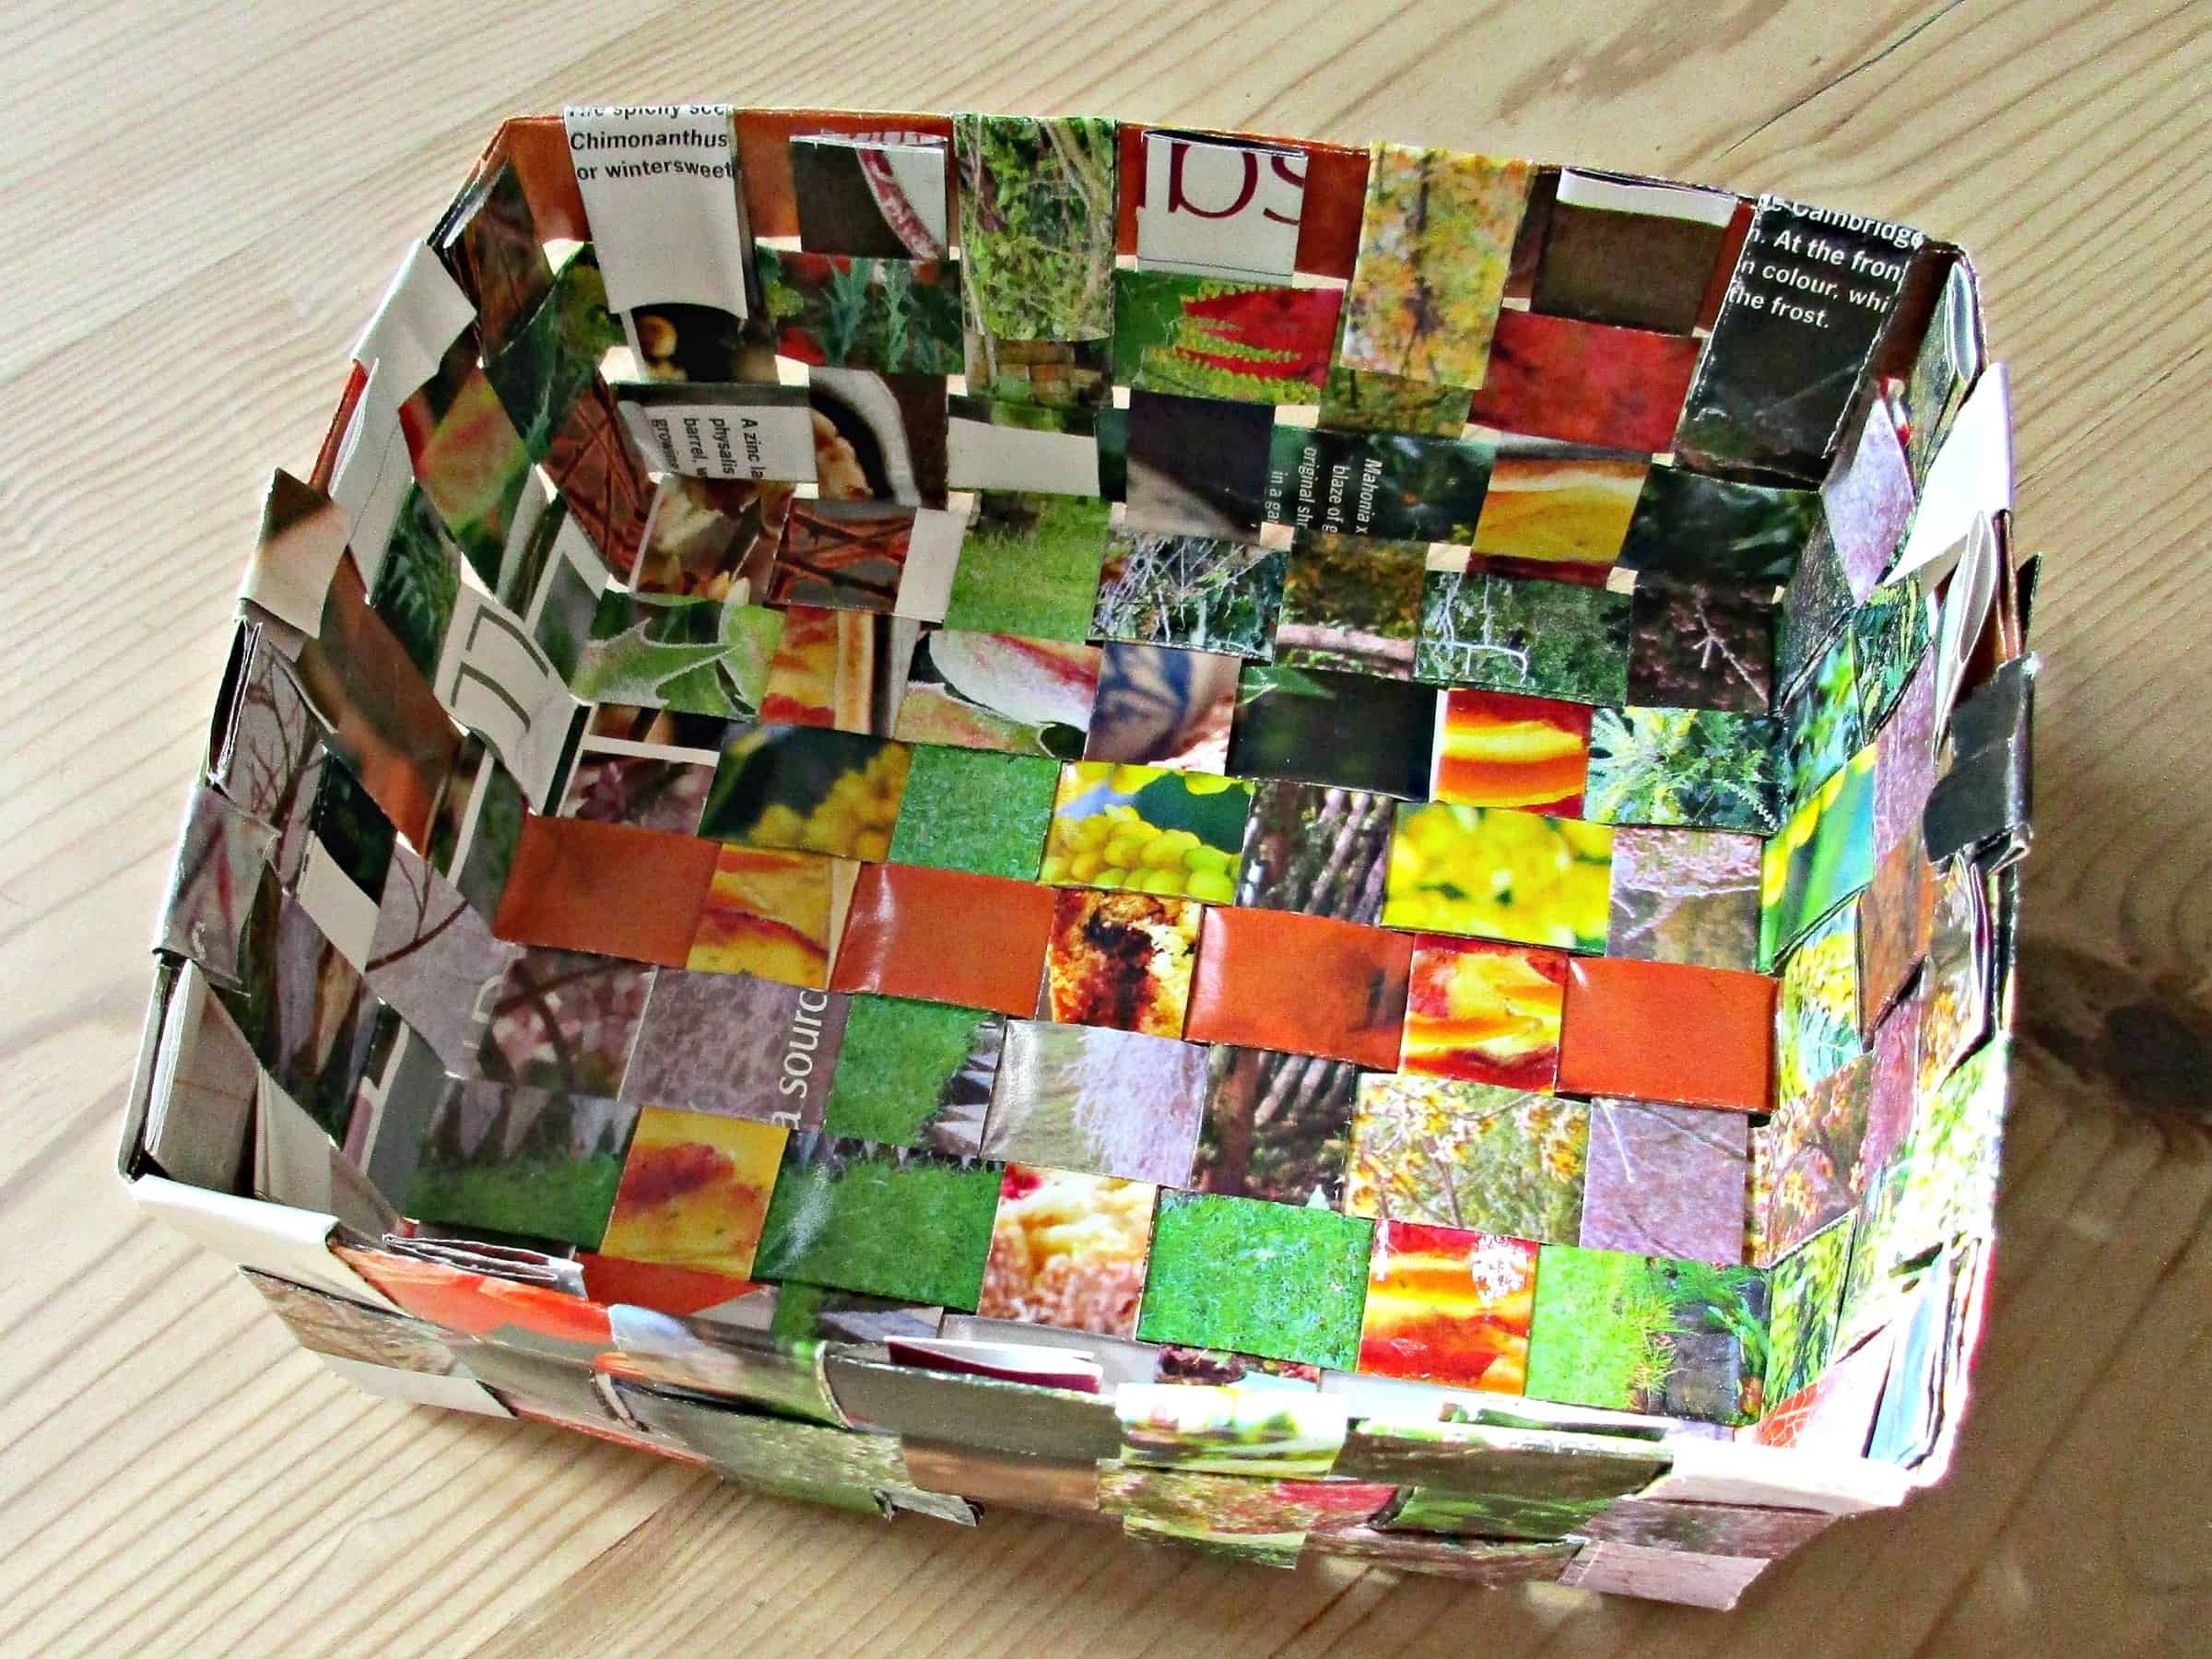 10 Recycled Crafts To Try With The Kids This Holiday